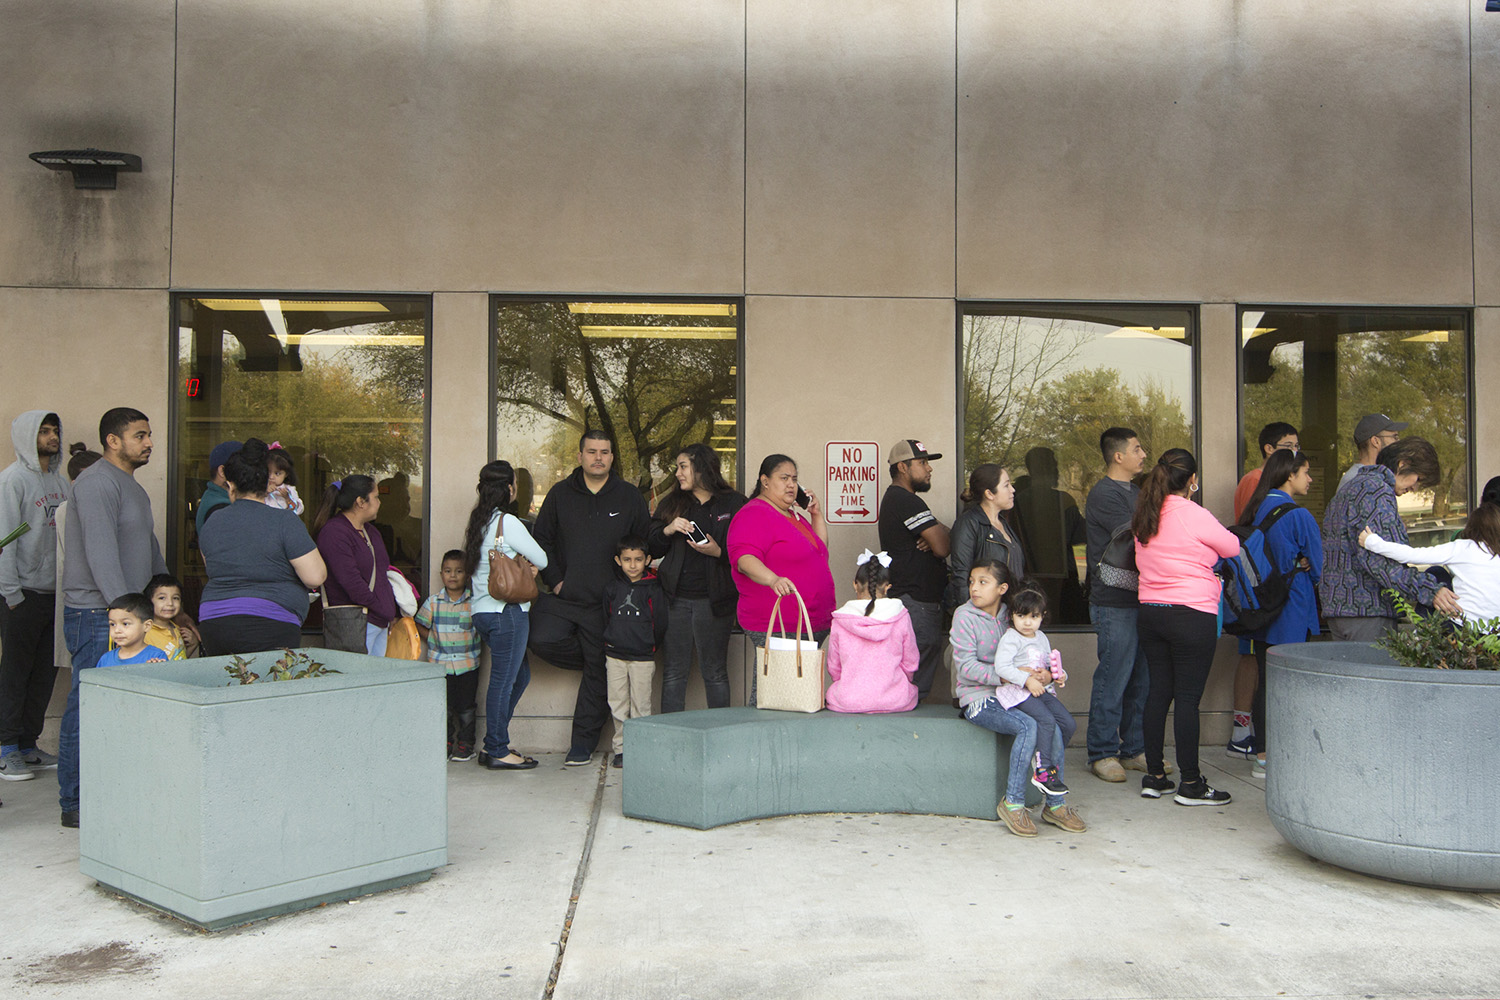 Families wait in line outside Travis County's passport office. Undocumented parents fearing deportation visited the office to get passports for their American children.